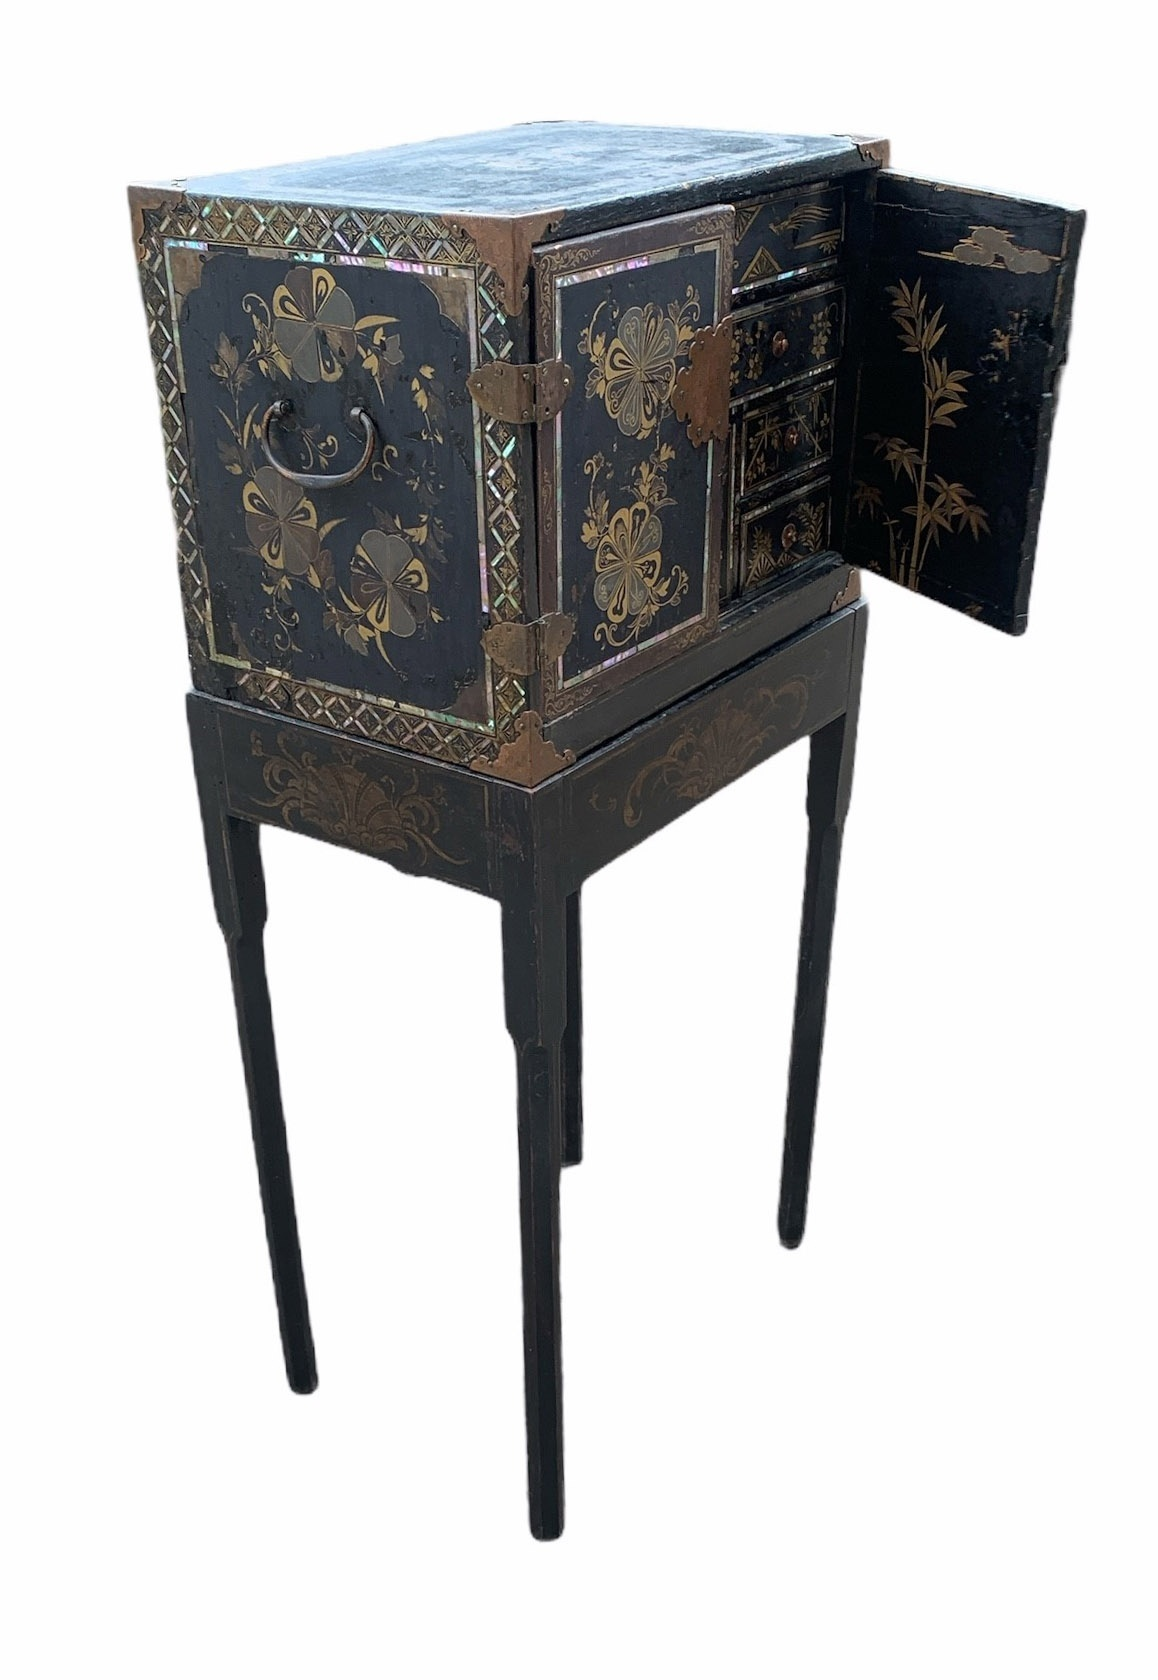 A PORTABLE INLAID EXPORT LACQUER NANBAN CABINET ON STAND Momoyama period (1573-1615) late 16th/early - Image 3 of 4